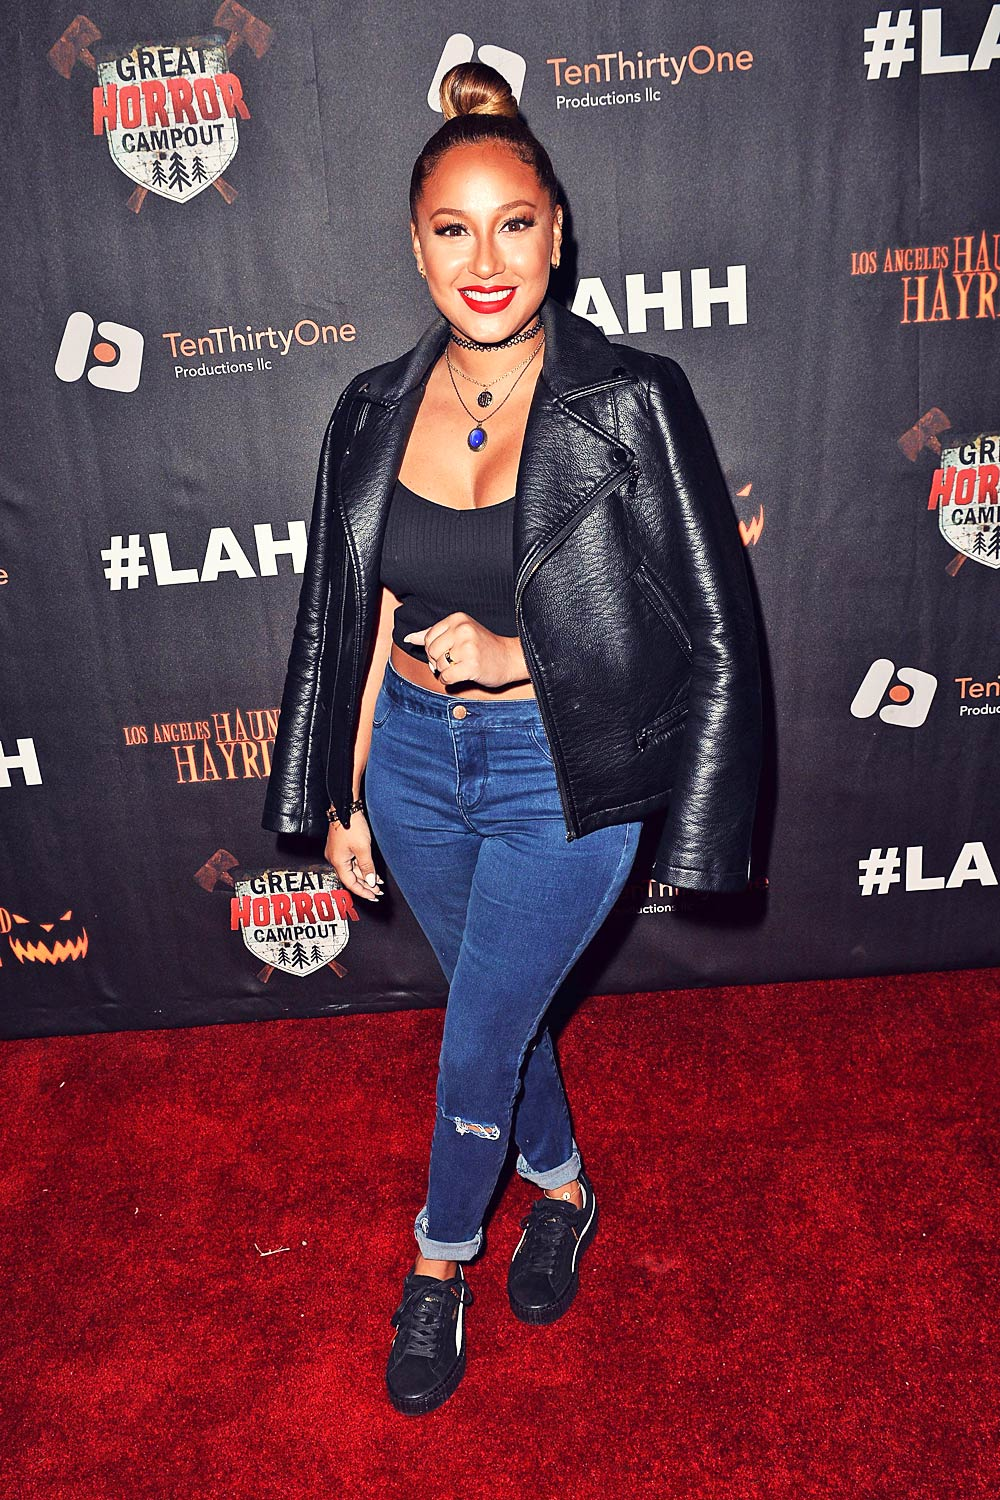 Adrienne Bailon attends Griffith Park Haunted Hayride Opening Night